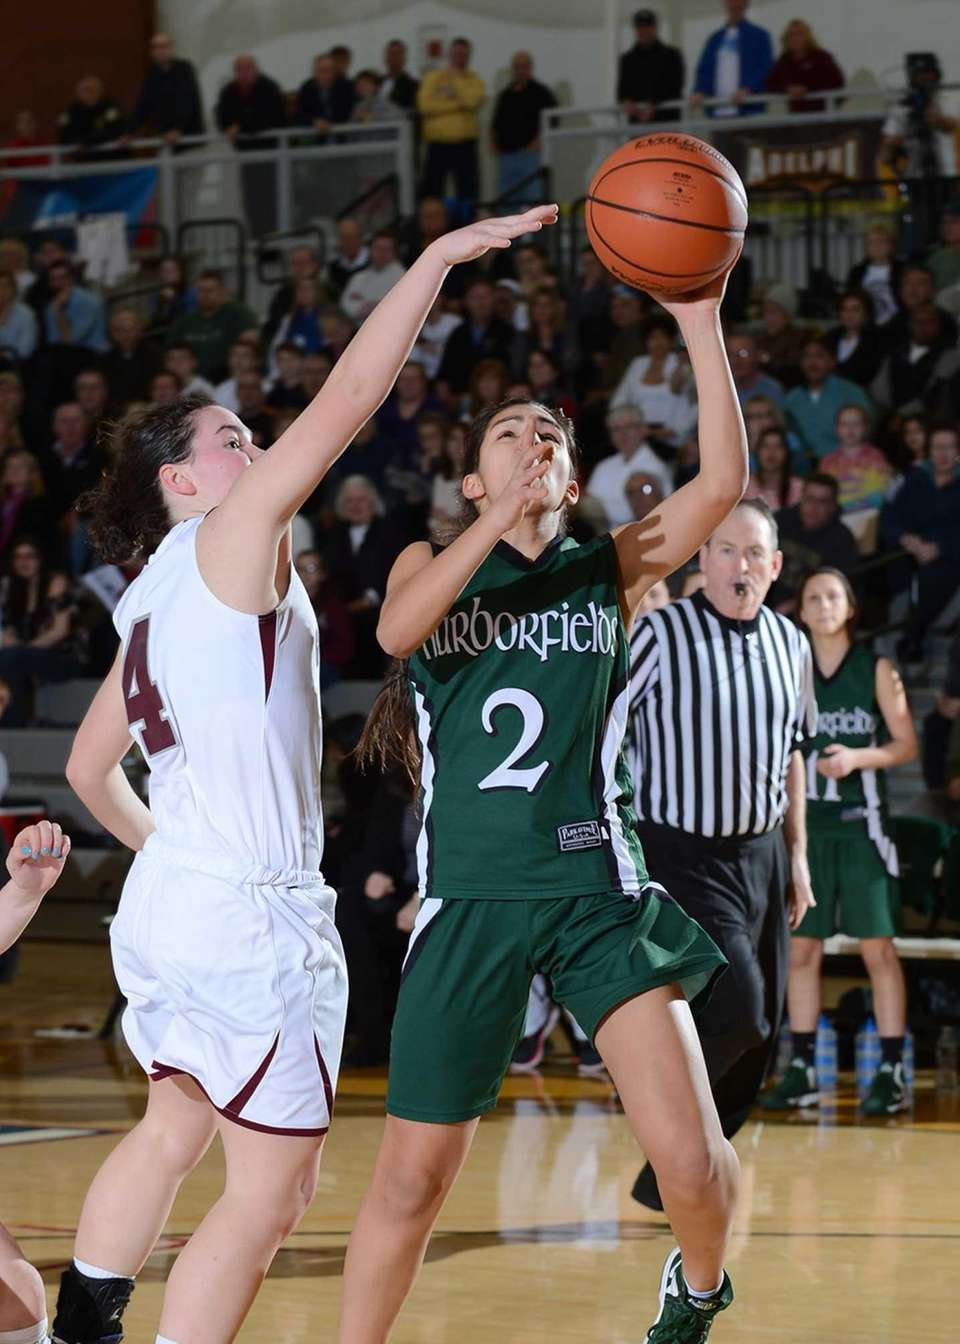 Harborfield's Amy Luxemberg goes up for the layup